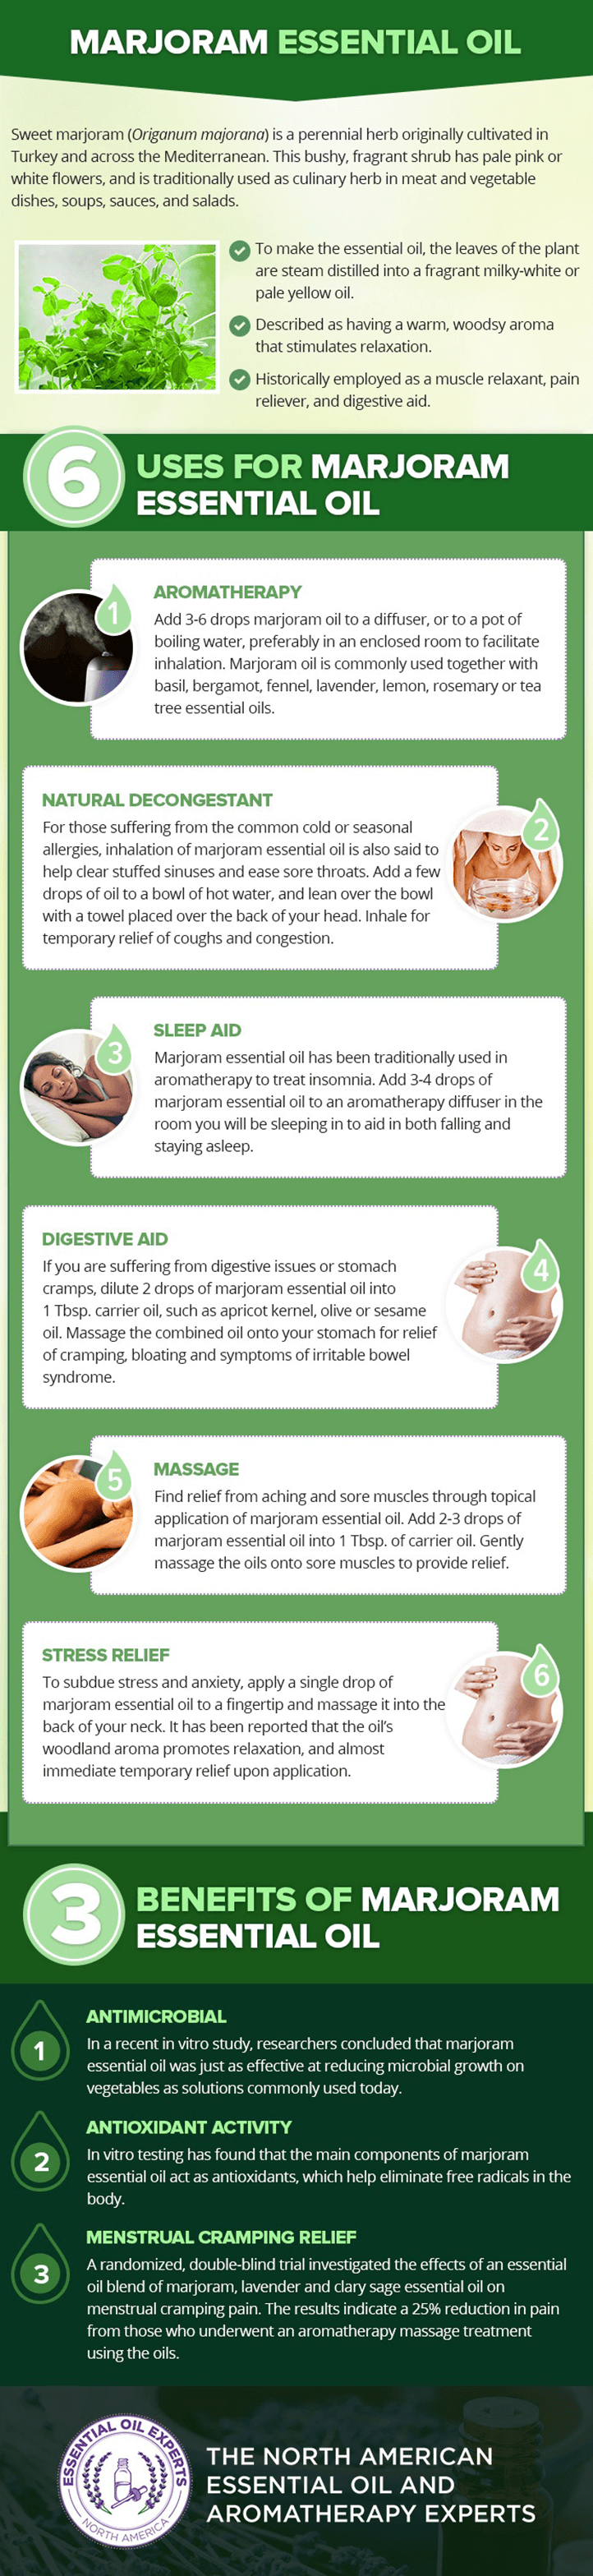 Marjoram essential oil uses and benefits.